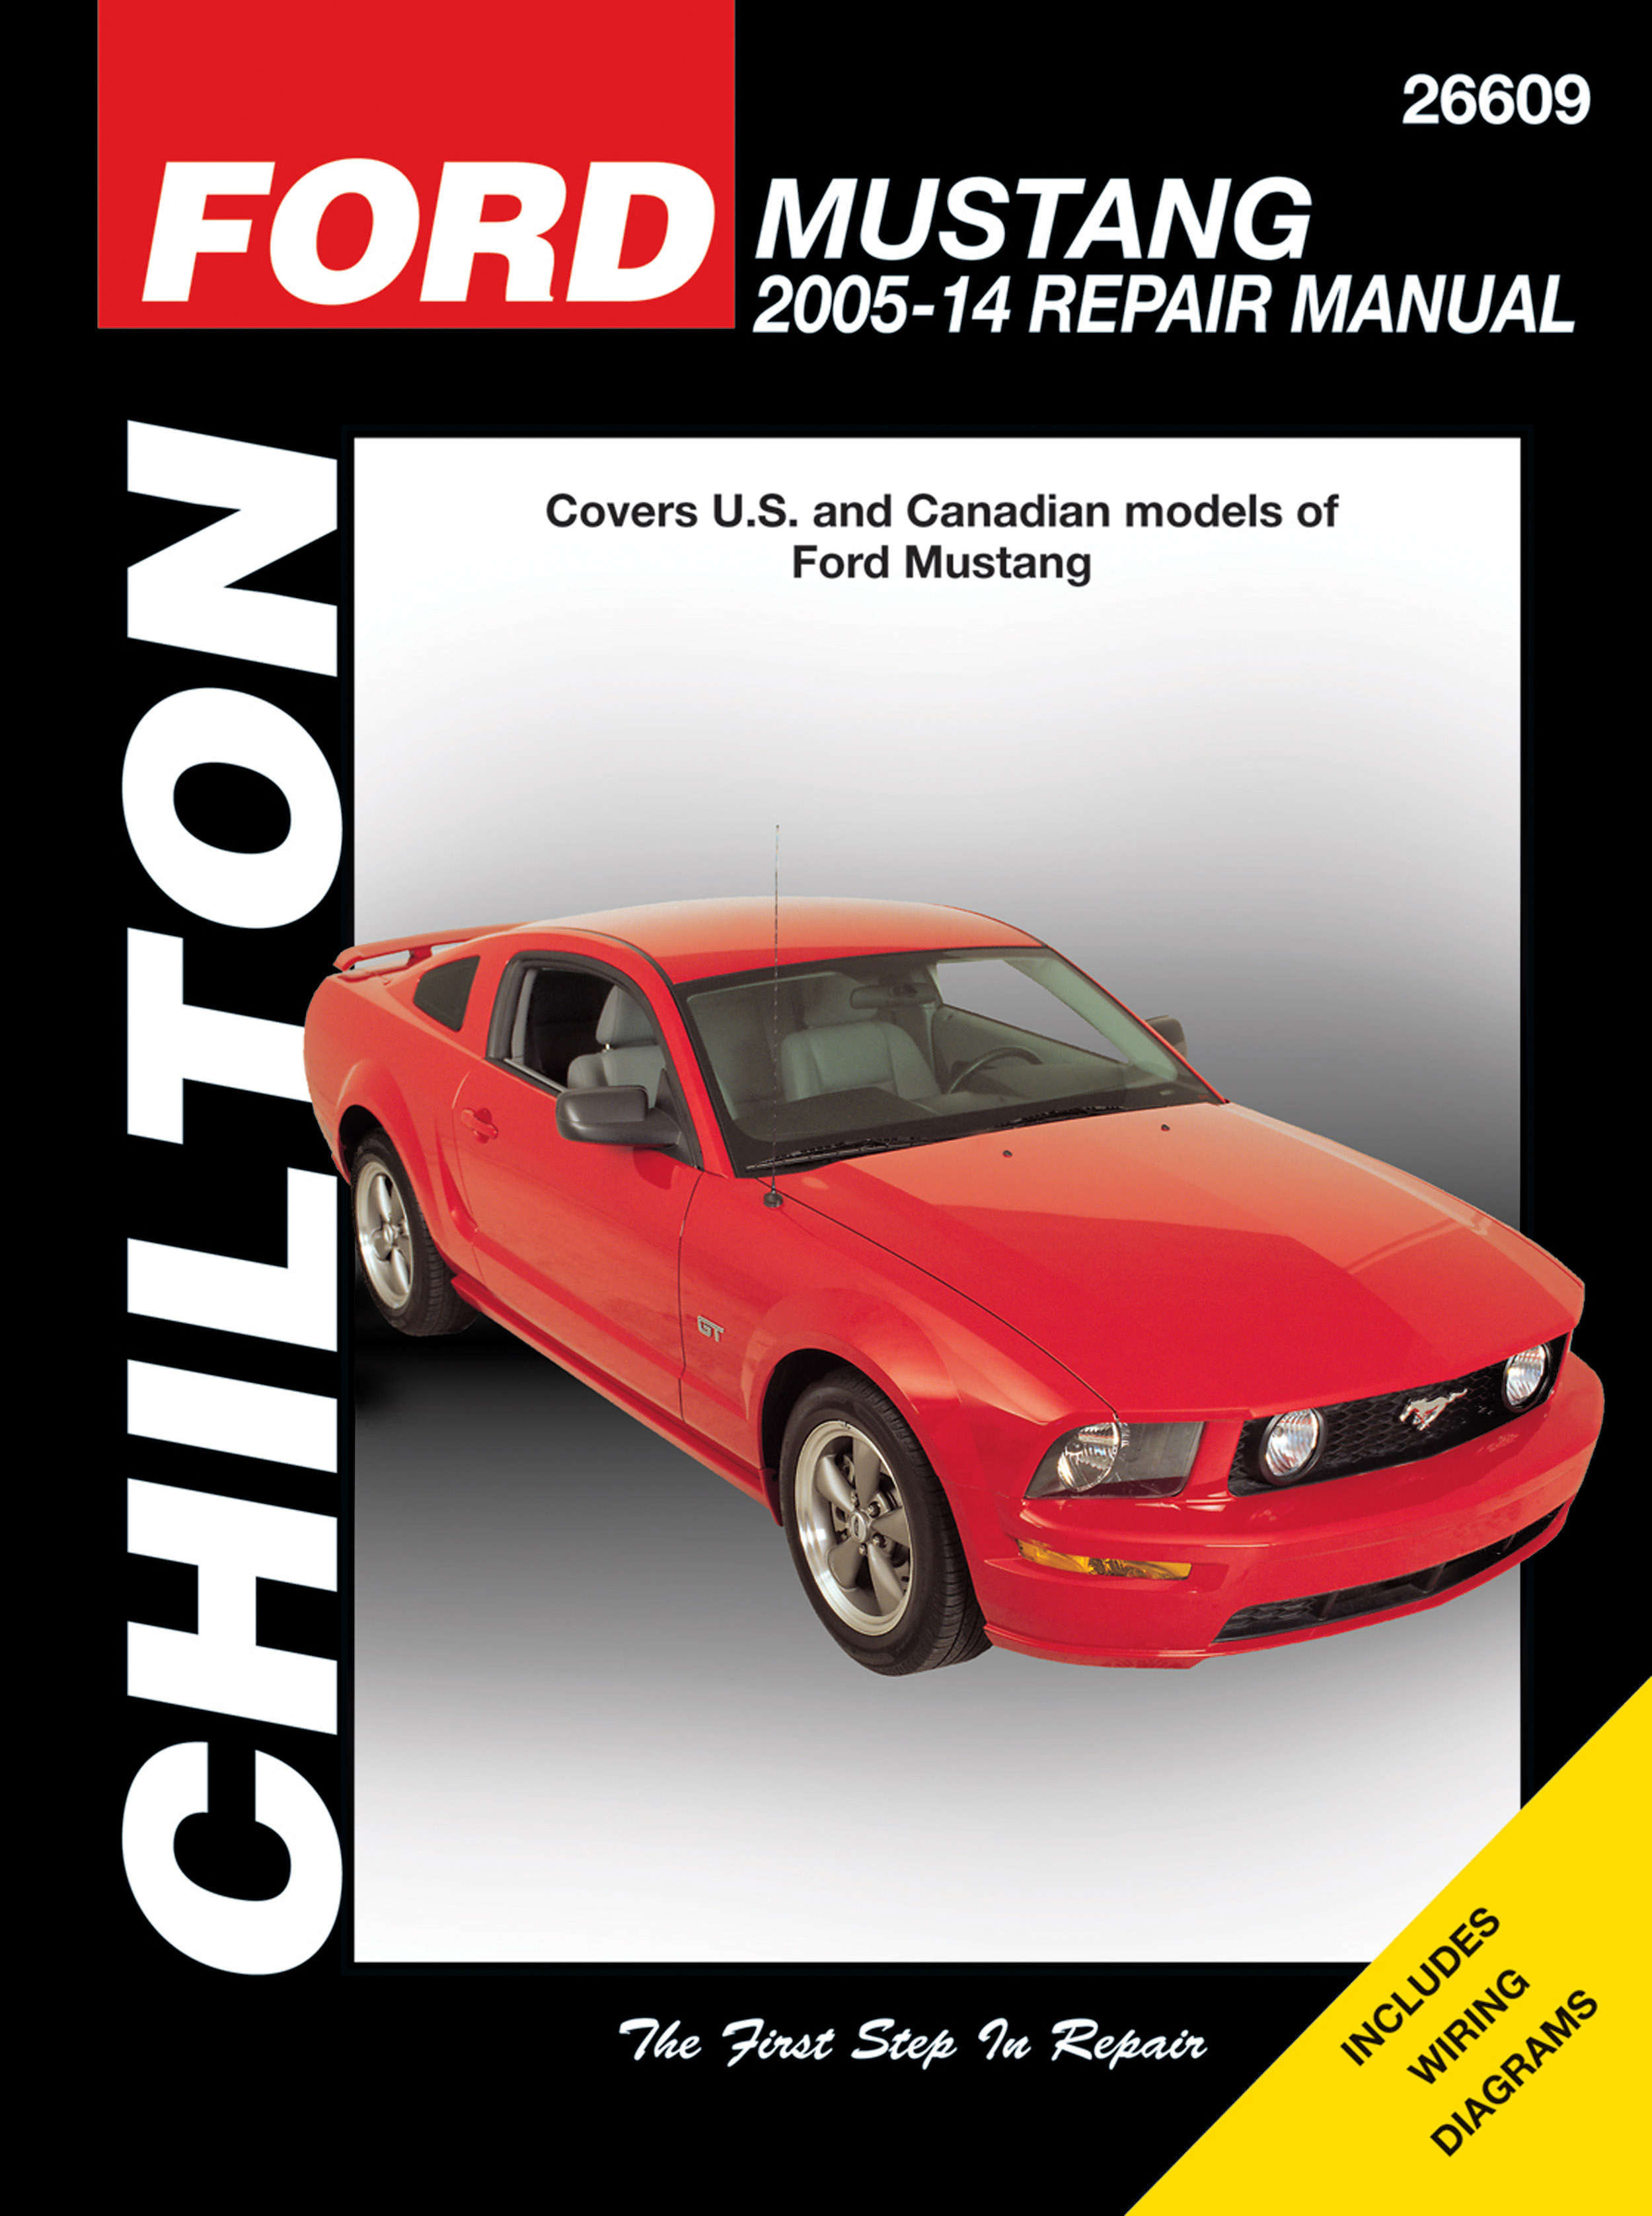 Ford Mustang (2005-14) for of Ford Mustang Chilton Repair Manual (USA)